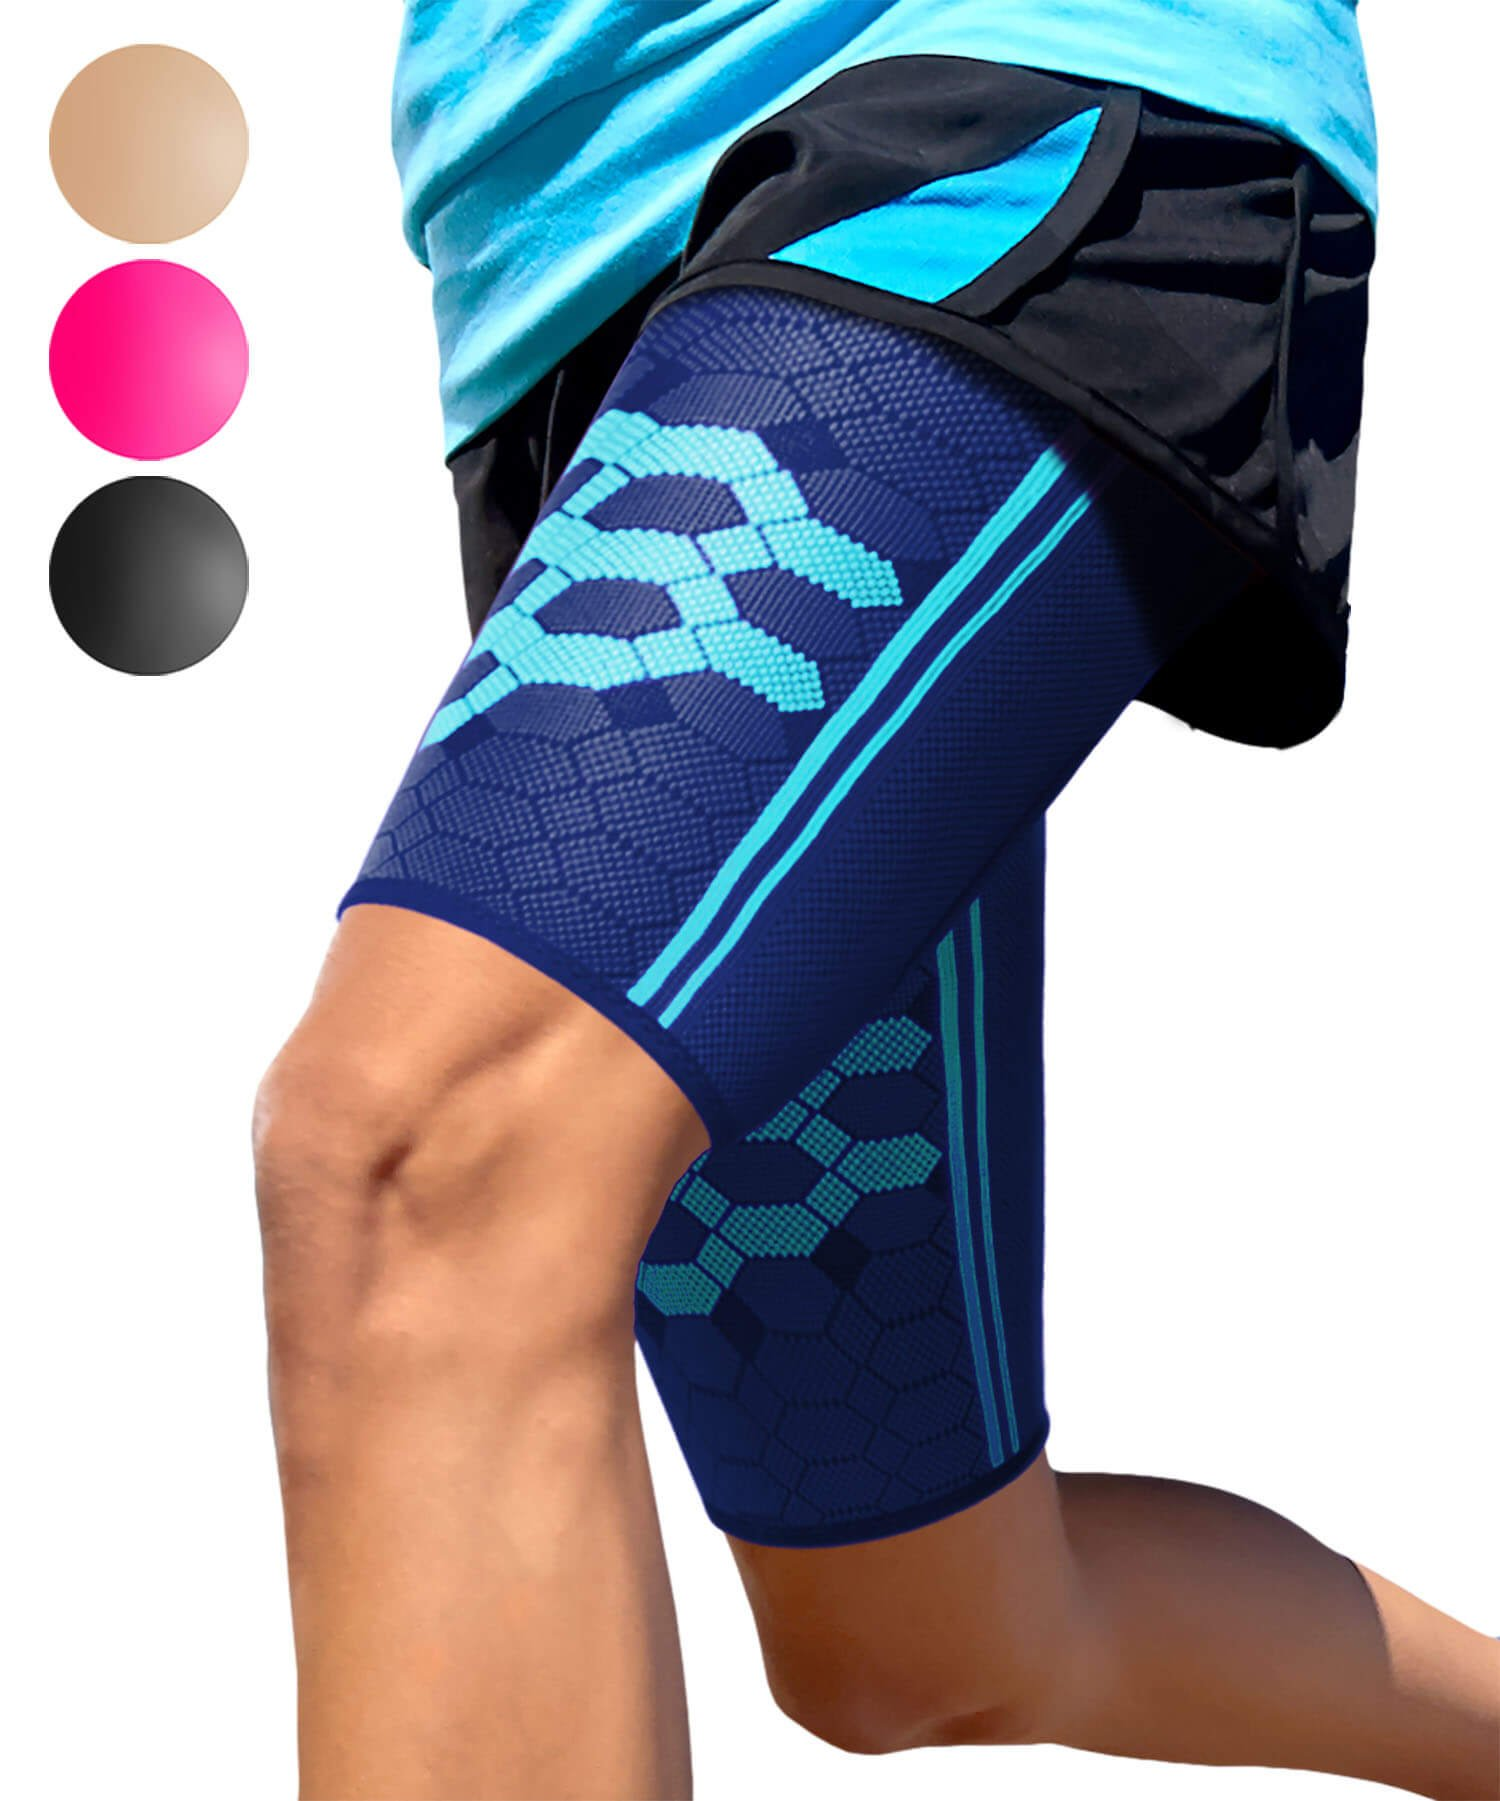 Thigh Support Compression Sleeve Cobalt Blue XL